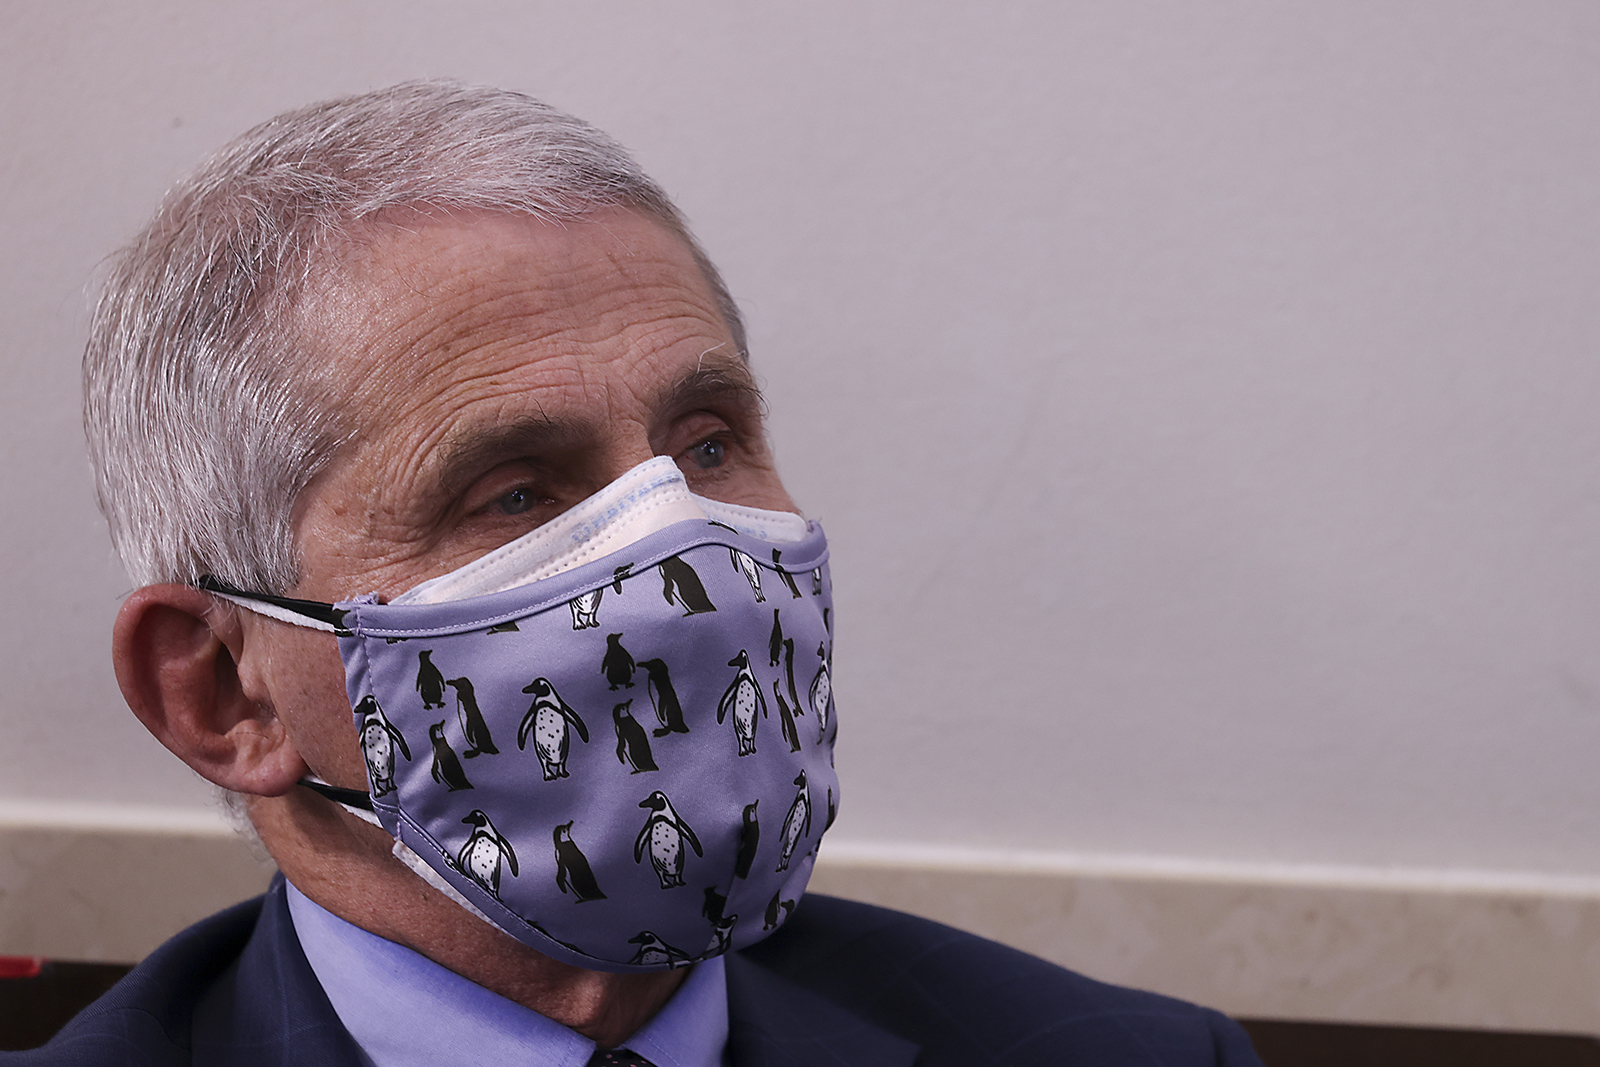 Dr. Anthony Fauci, director of the National Institute of Allergy and Infectious Diseases looks on during a White House Coronavirus Task Force press briefing in the James Brady Press Briefing Room at the White House on Thursday, November 19 in Washington.